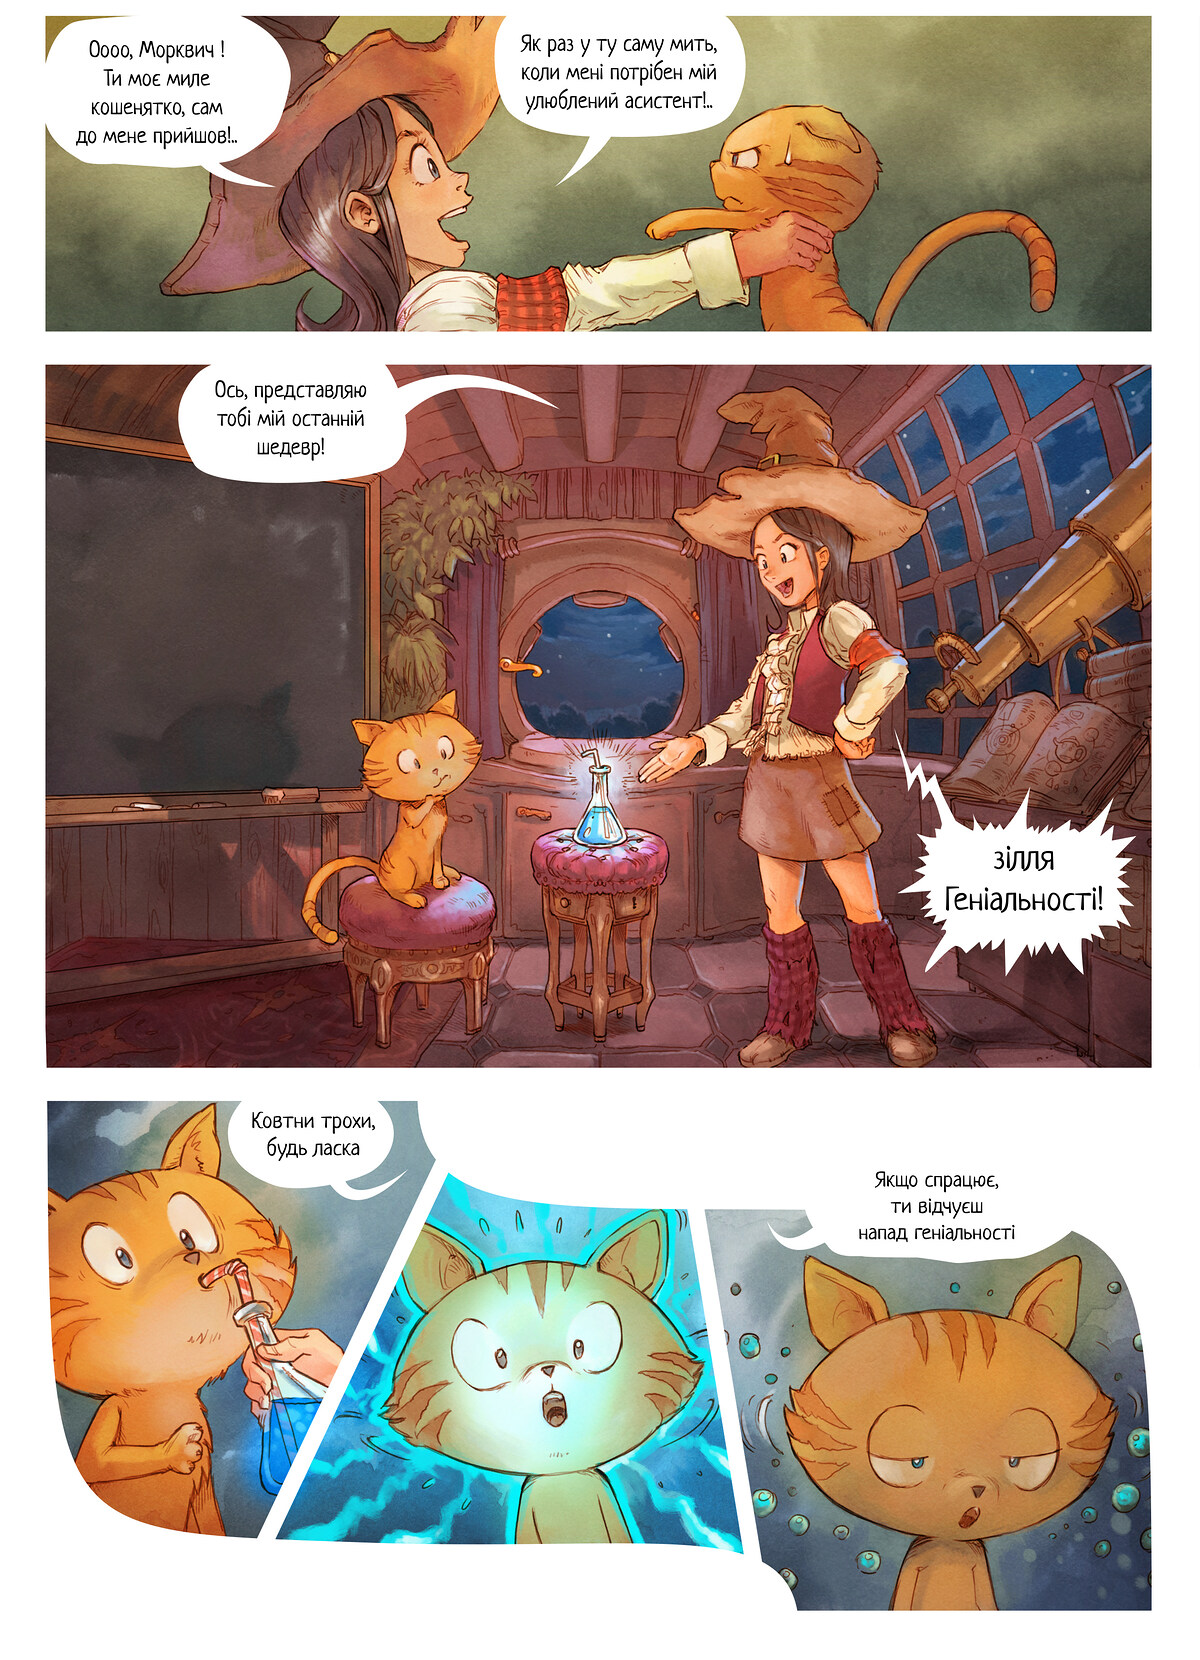 A webcomic page of Pepper&Carrot, епізод 4 [uk], стор. 3